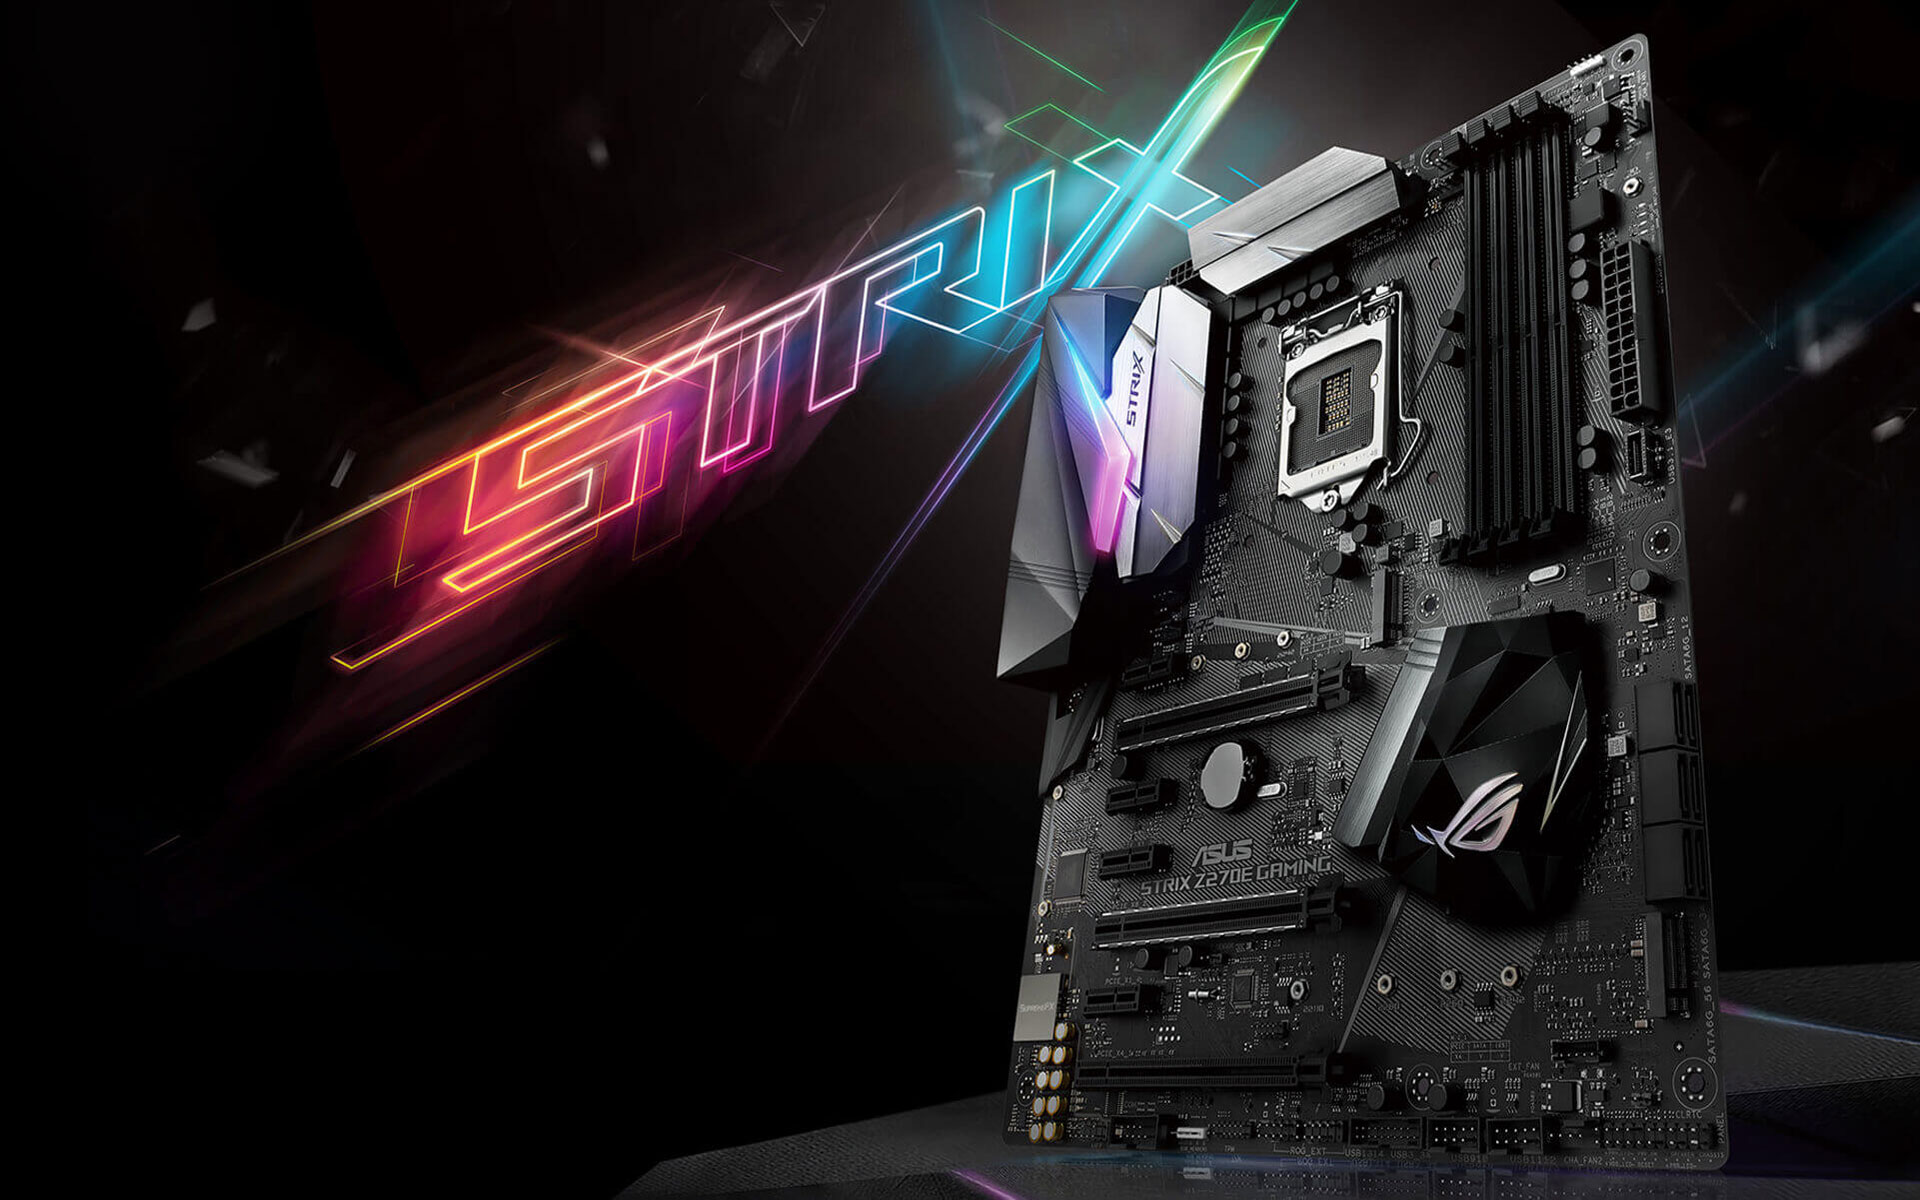 370 Wallpapers Para Iphone: Placa Mãe ASUS ROG STRIX Z270E Motherboard